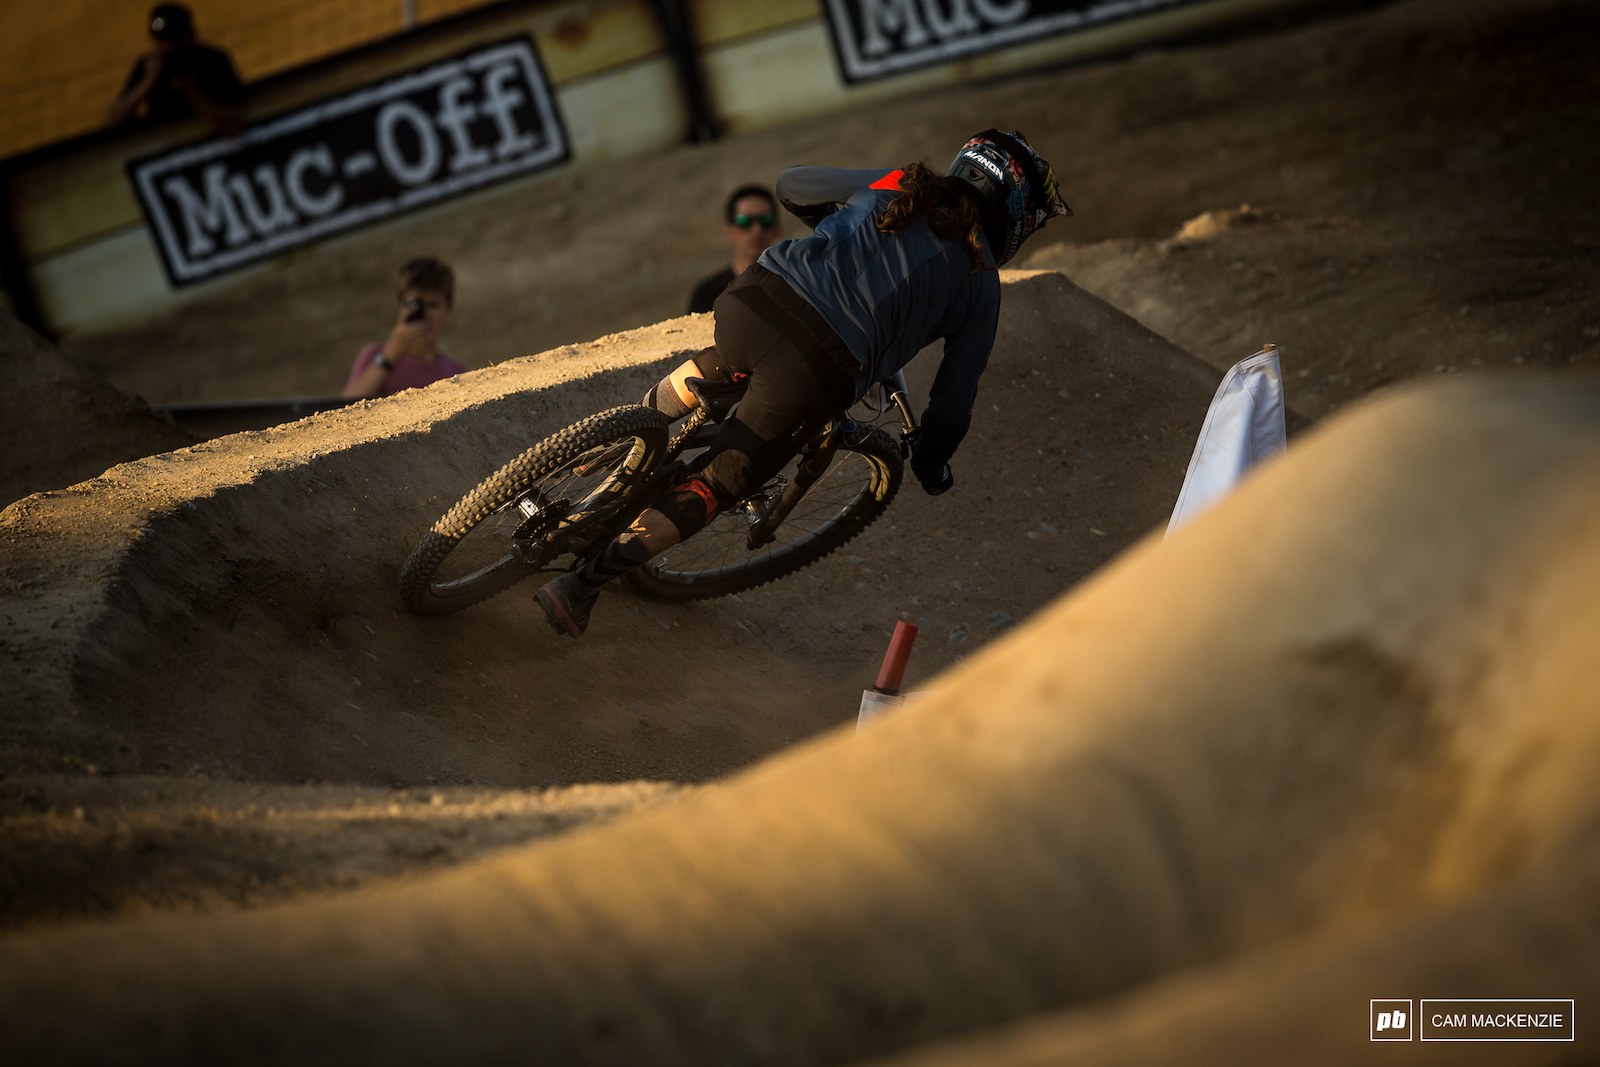 Manon Carpenter was out racing another Crankworx event today but got knocked out early against a fierce Anneke Beerten